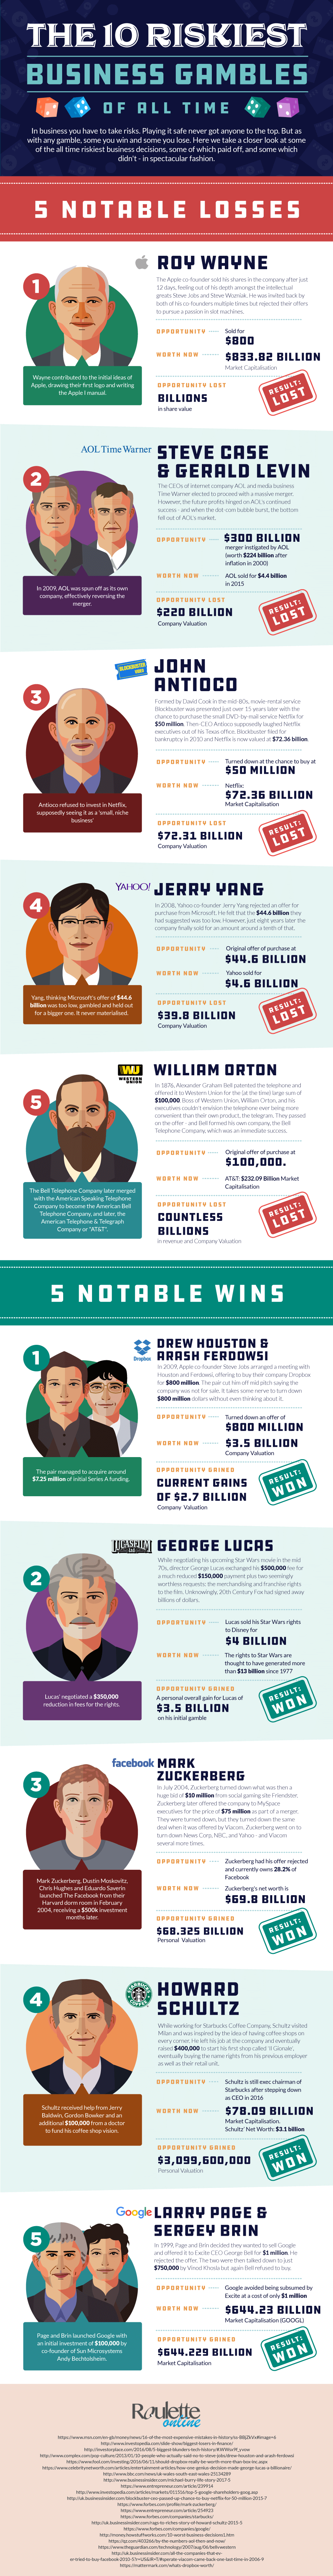 infographic - 10 riskiest business gambles of all time [Infographic]